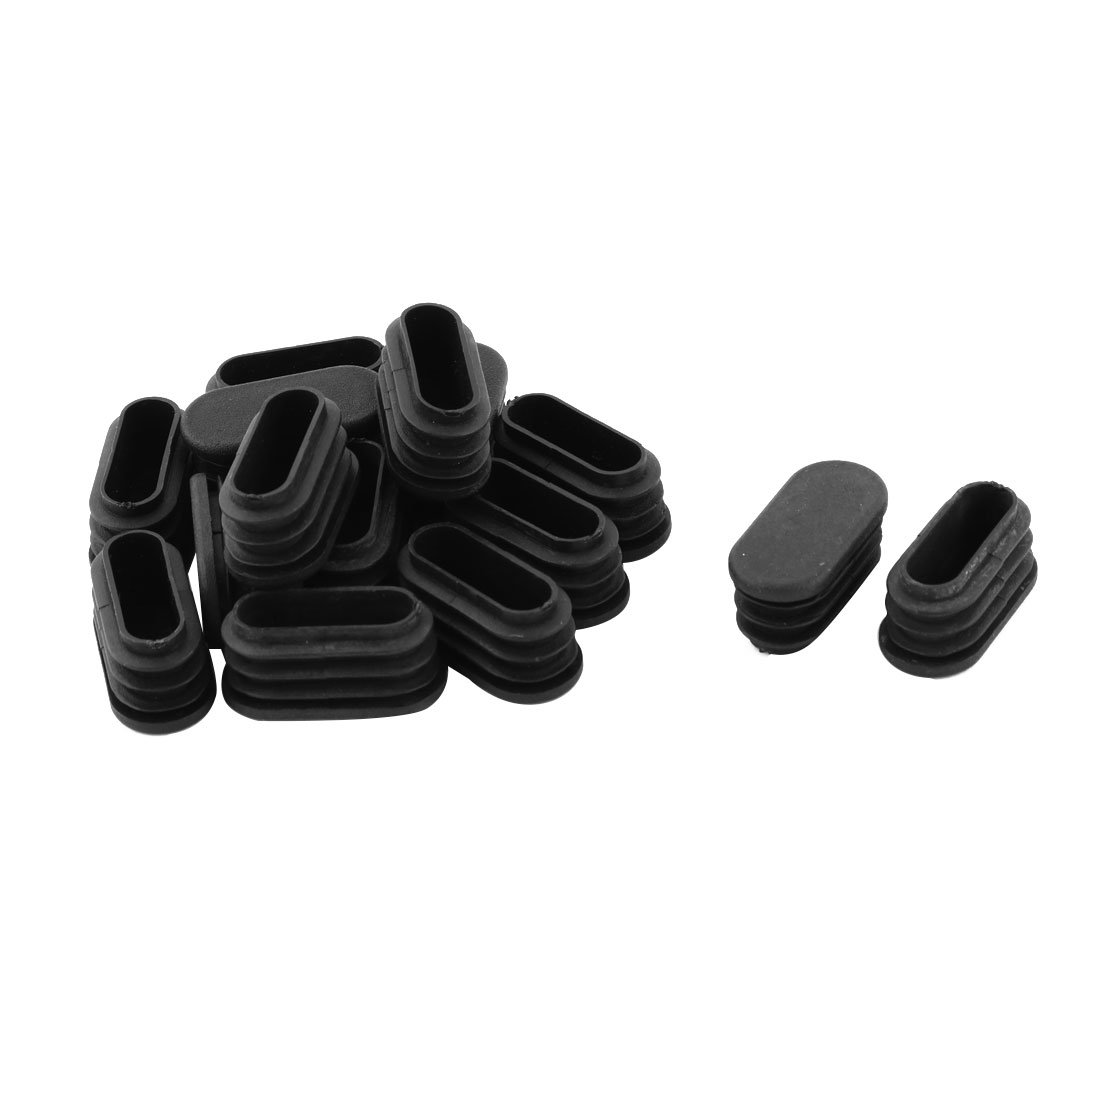 uxcell Plastic Tube Inserts Oval Chair Table Leg